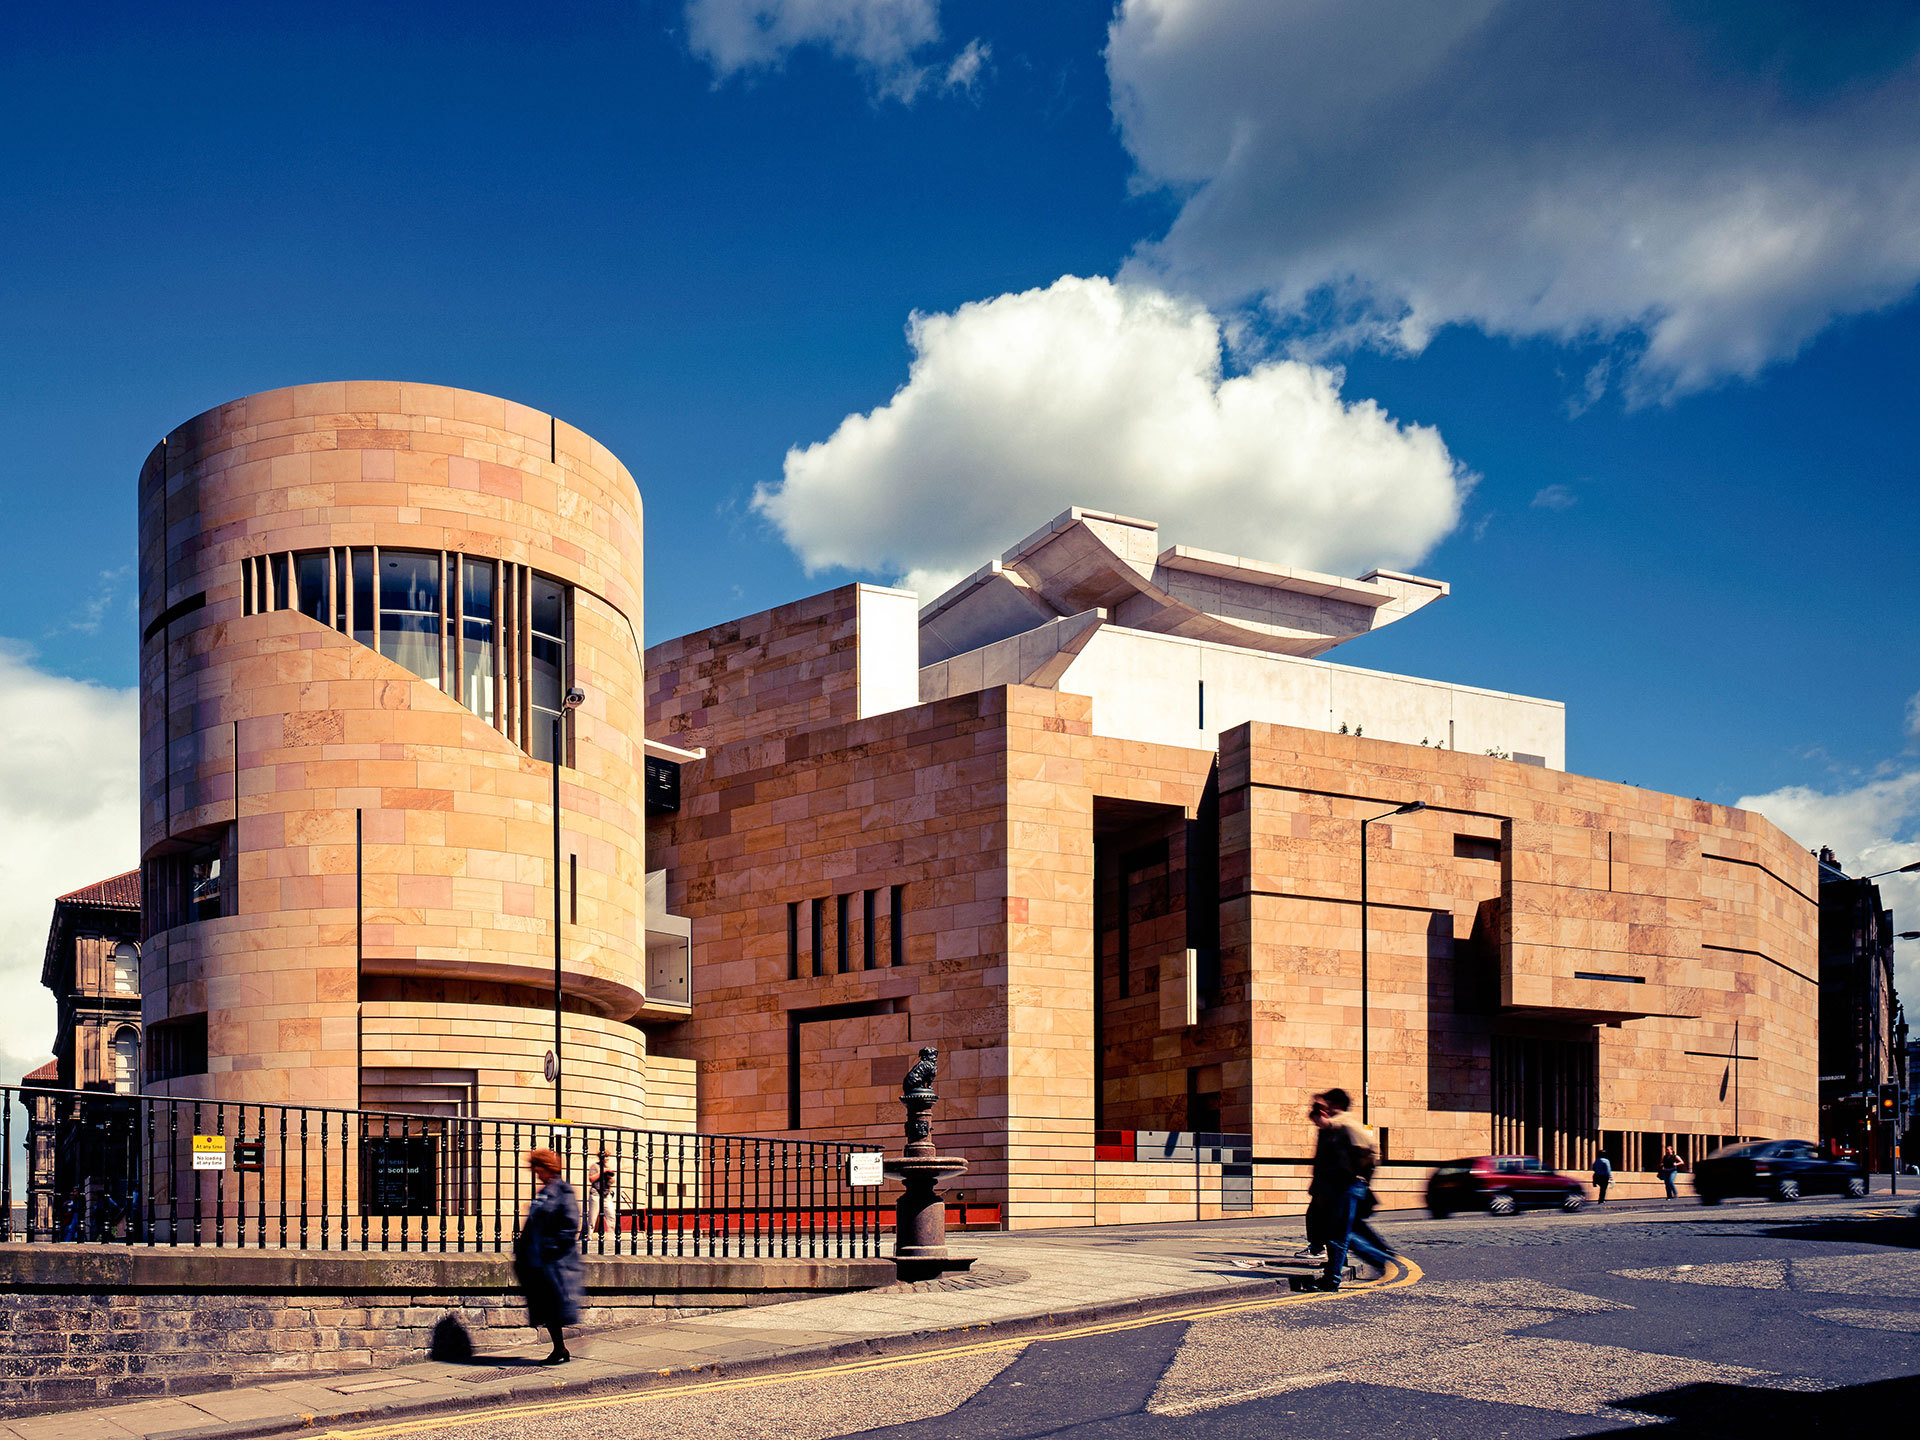 Named the top 10 buildings in Scotland over the past 100 years 21